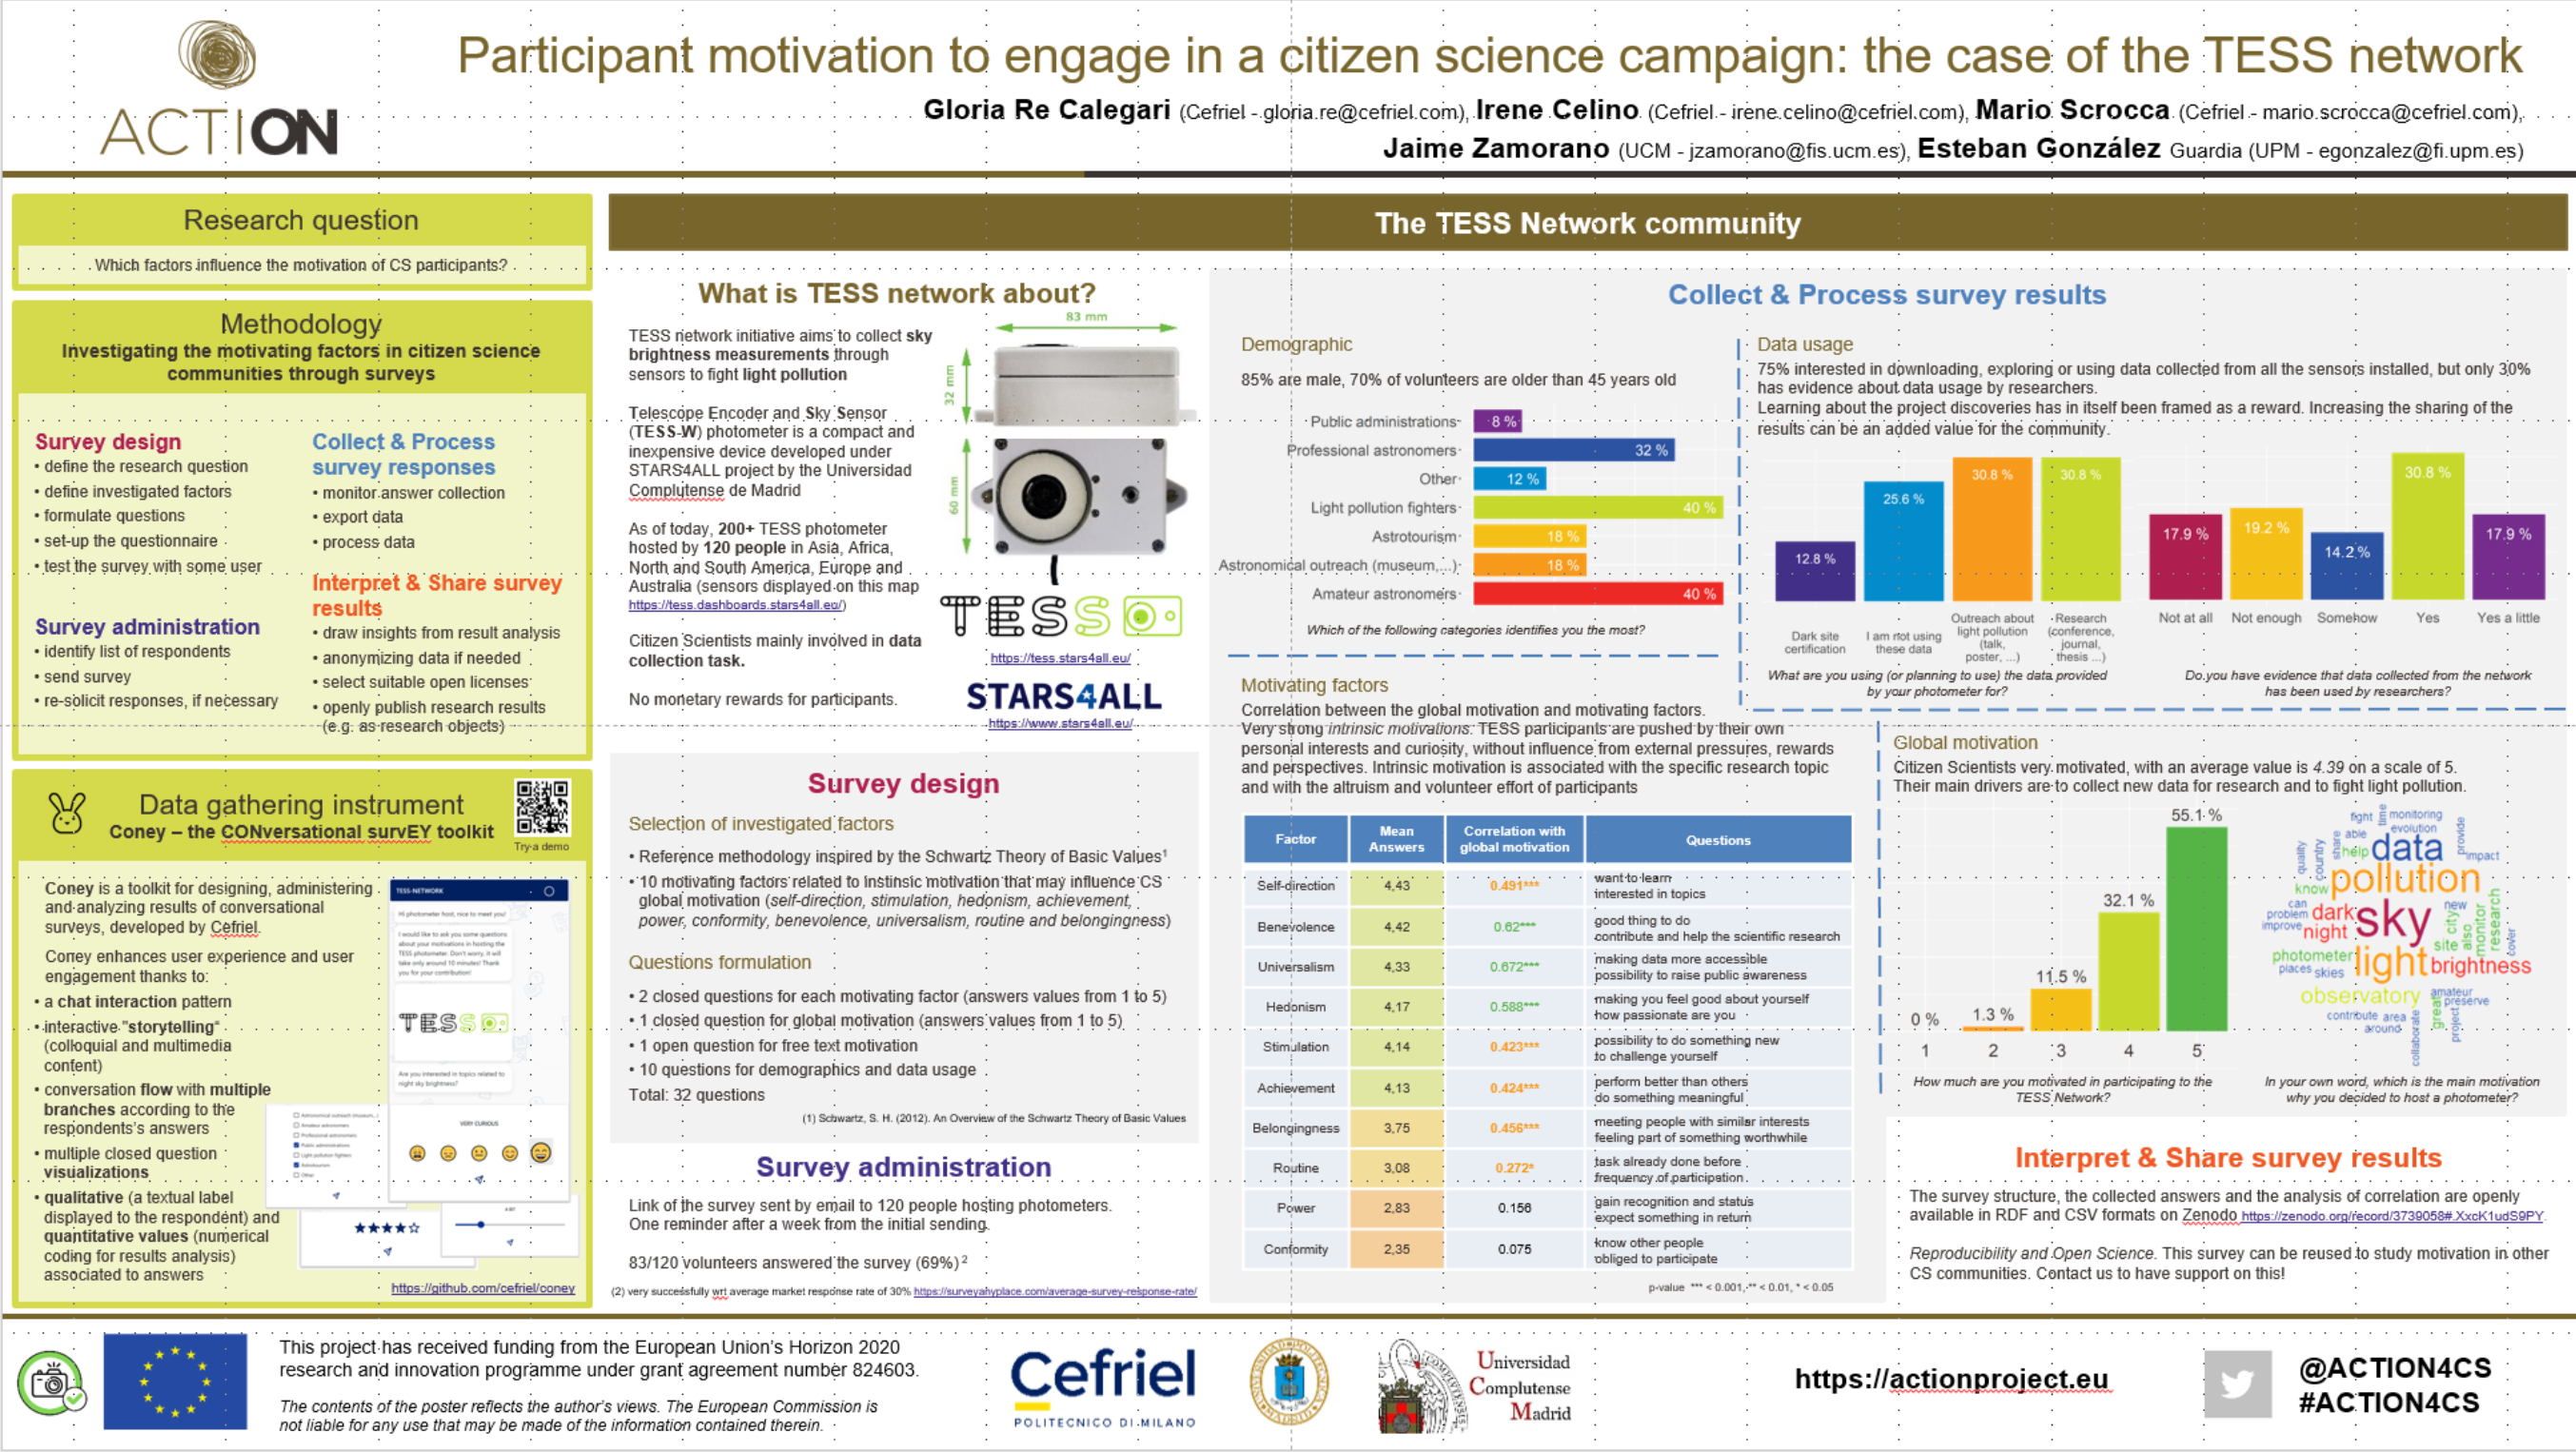 ACTION presented 2 e-posters at the ECSA 2020 conference